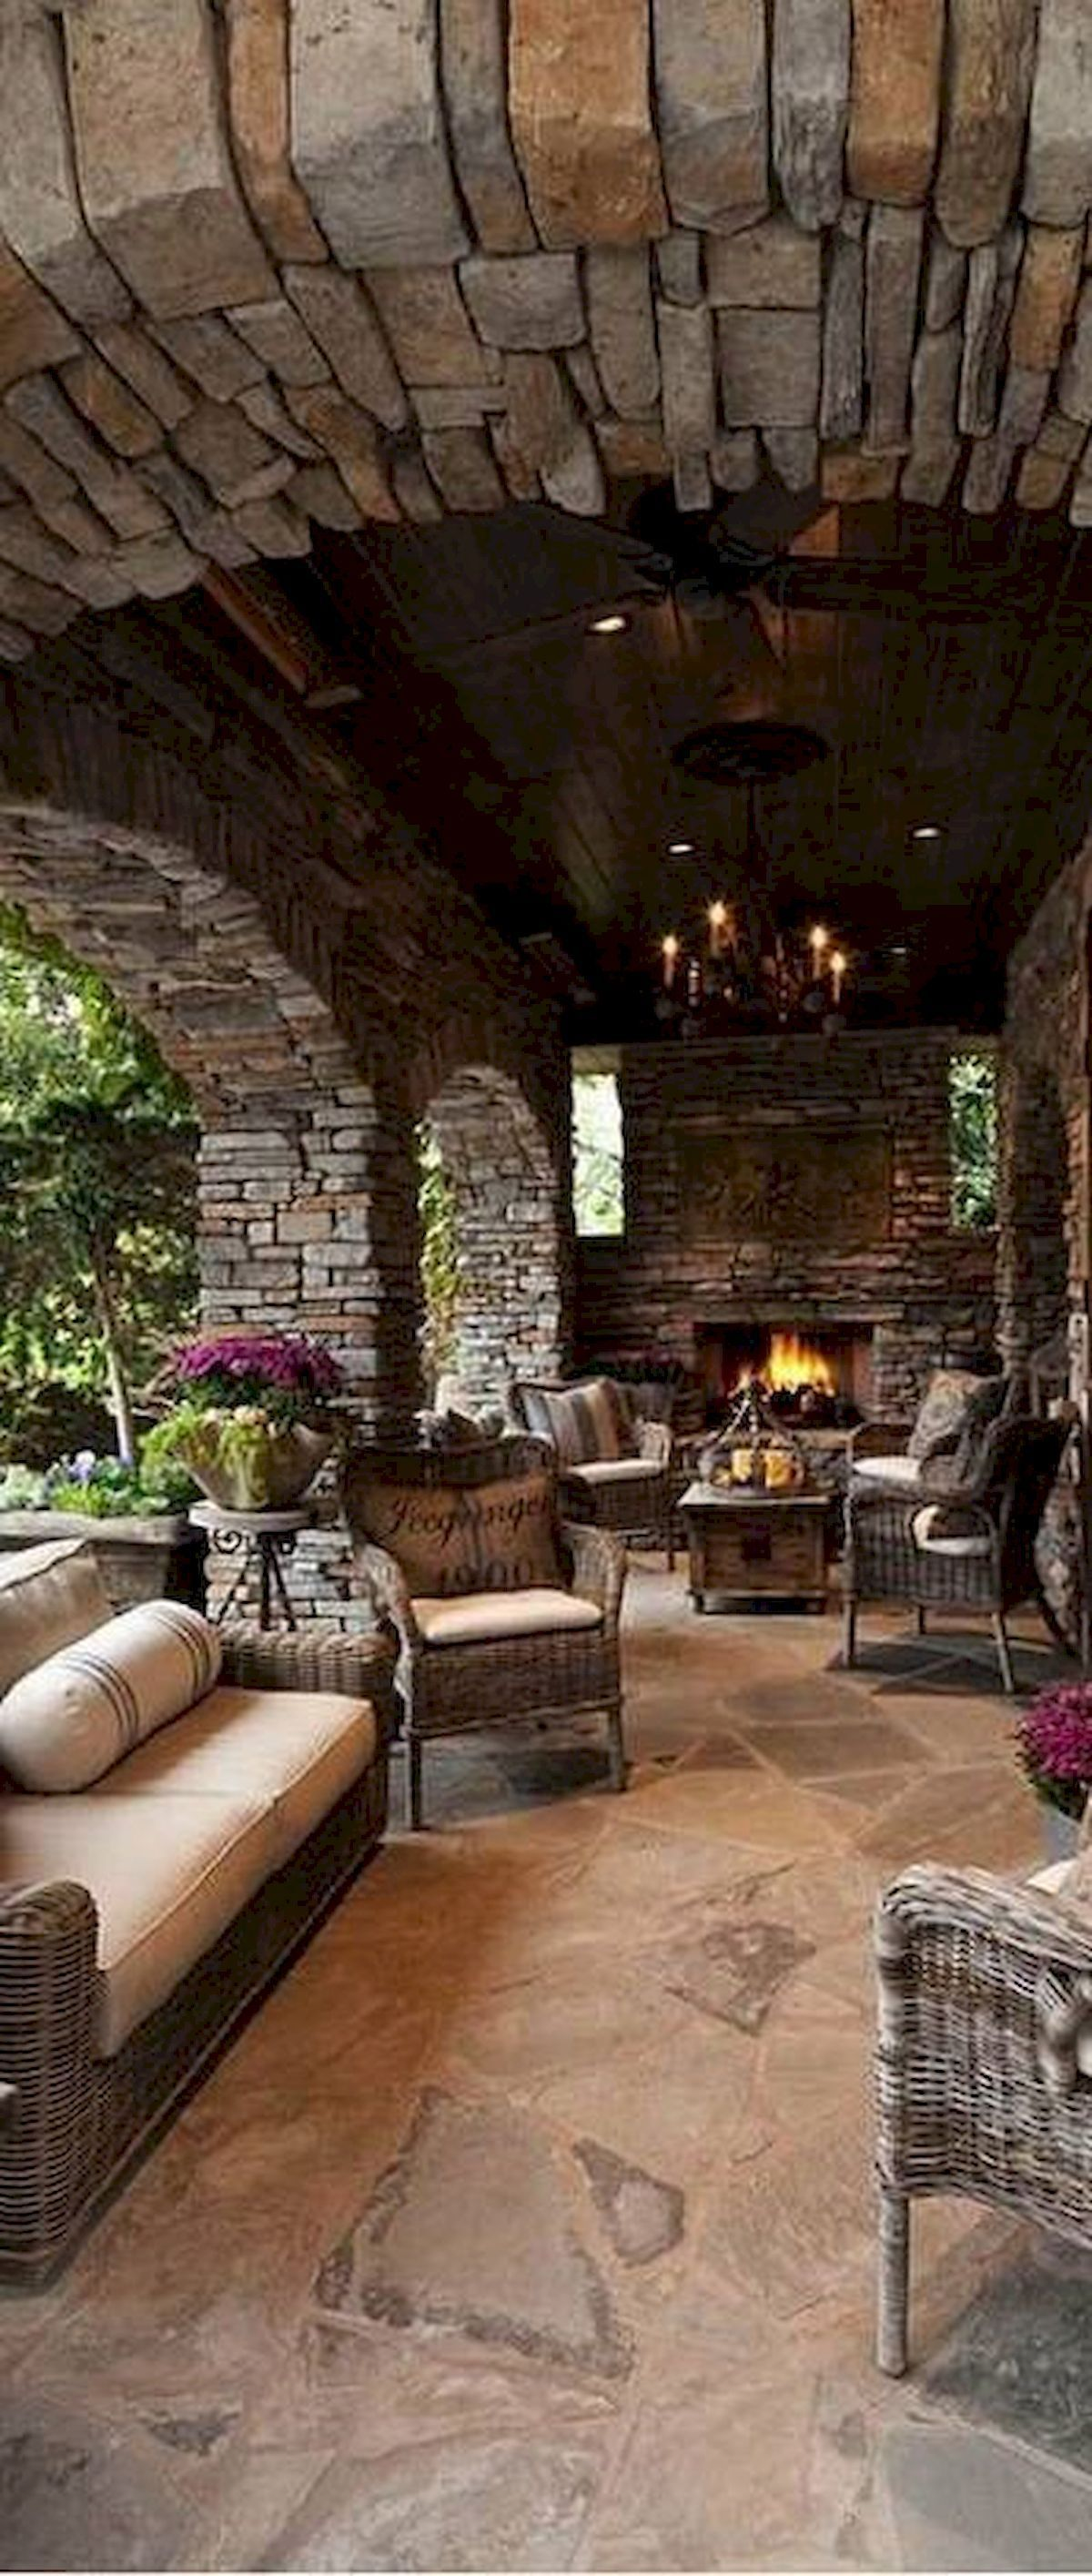 rustic outdoor living room for hom | 25+ Rustic Living Room Ideas To Fashion Your Revamp Around ...